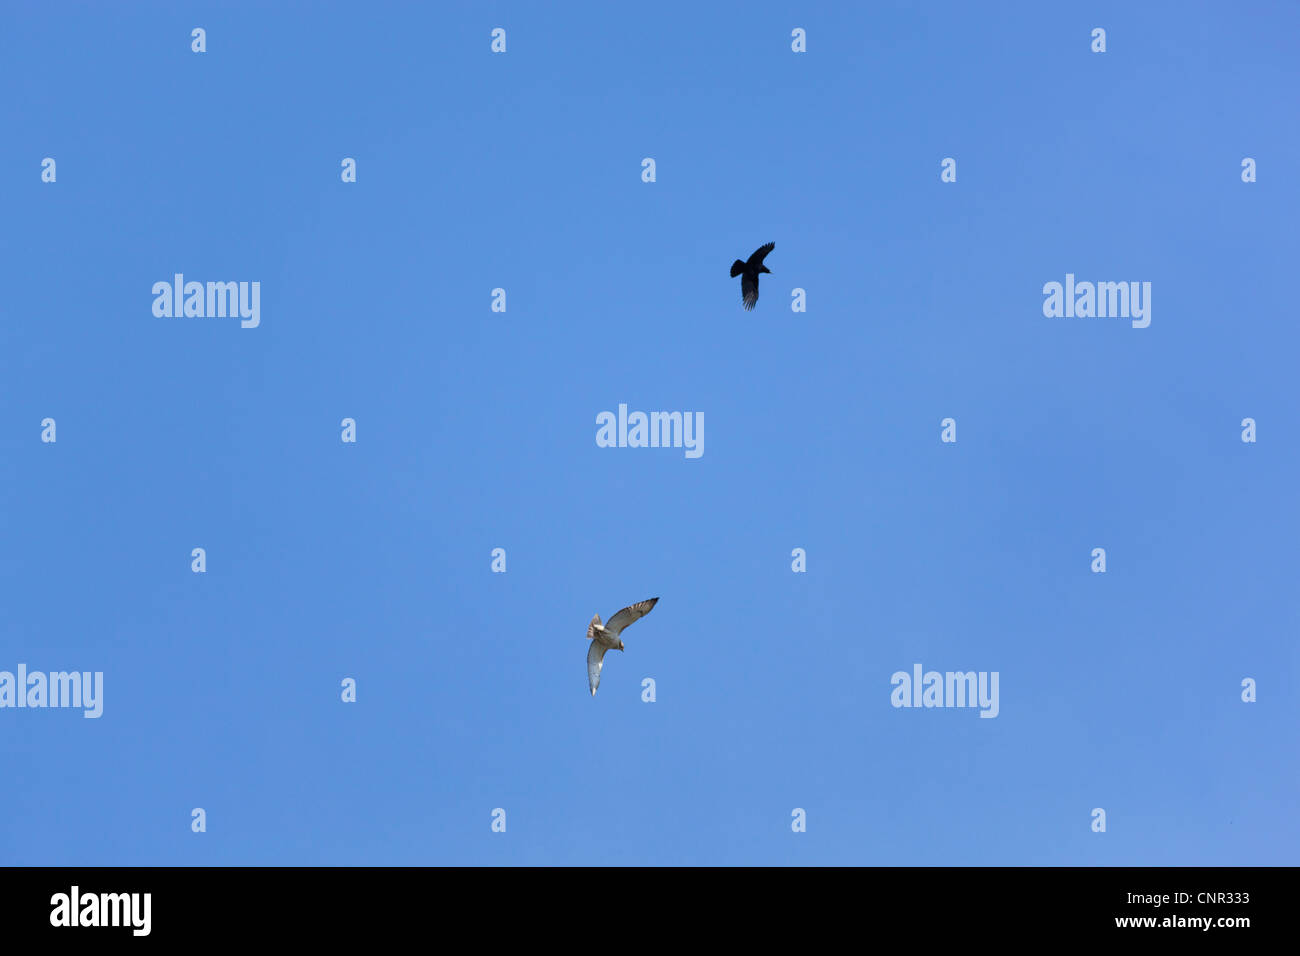 Red Tail Hawk harassed by Black bird. - Stock Image